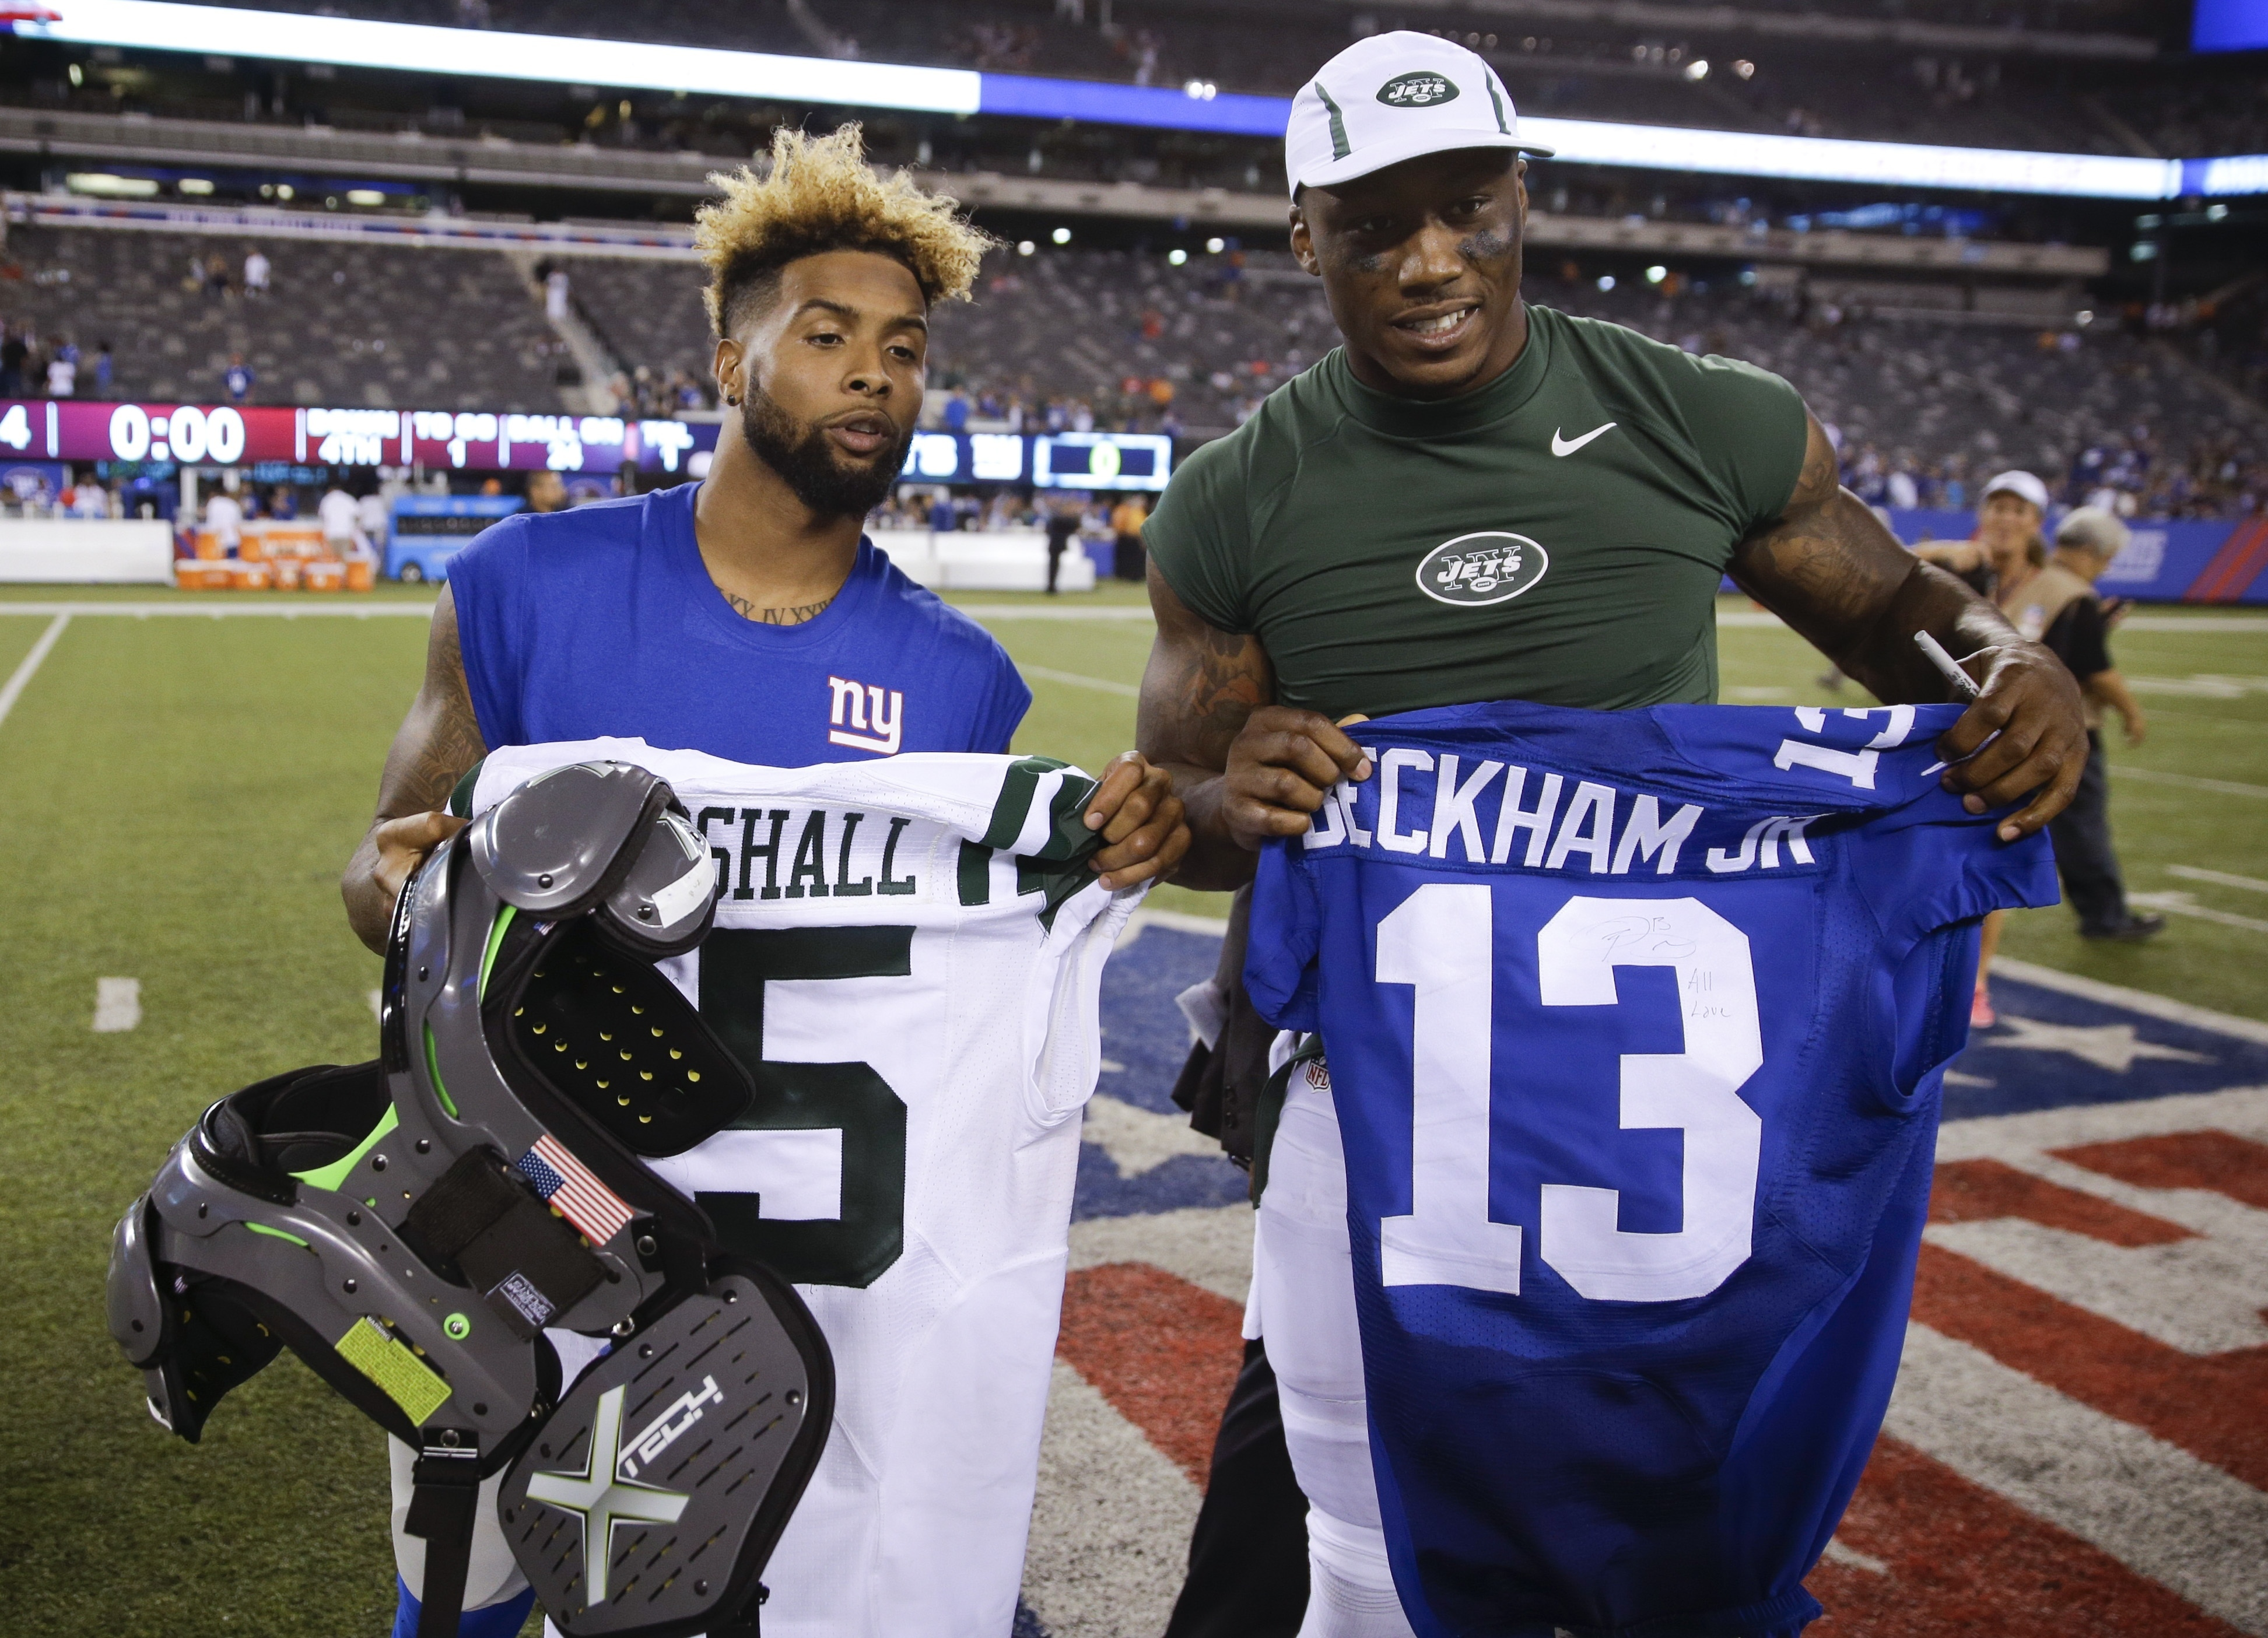 FILE - In tihs Aug. 29, 2015, file photo, New York Giants wide receiver Odell Beckham, left, and New York Jets wide receiver Brandon Marshall, right, pose for photographs after exchanging jerseys after a preseason NFL football game in East Rutherford, N.J